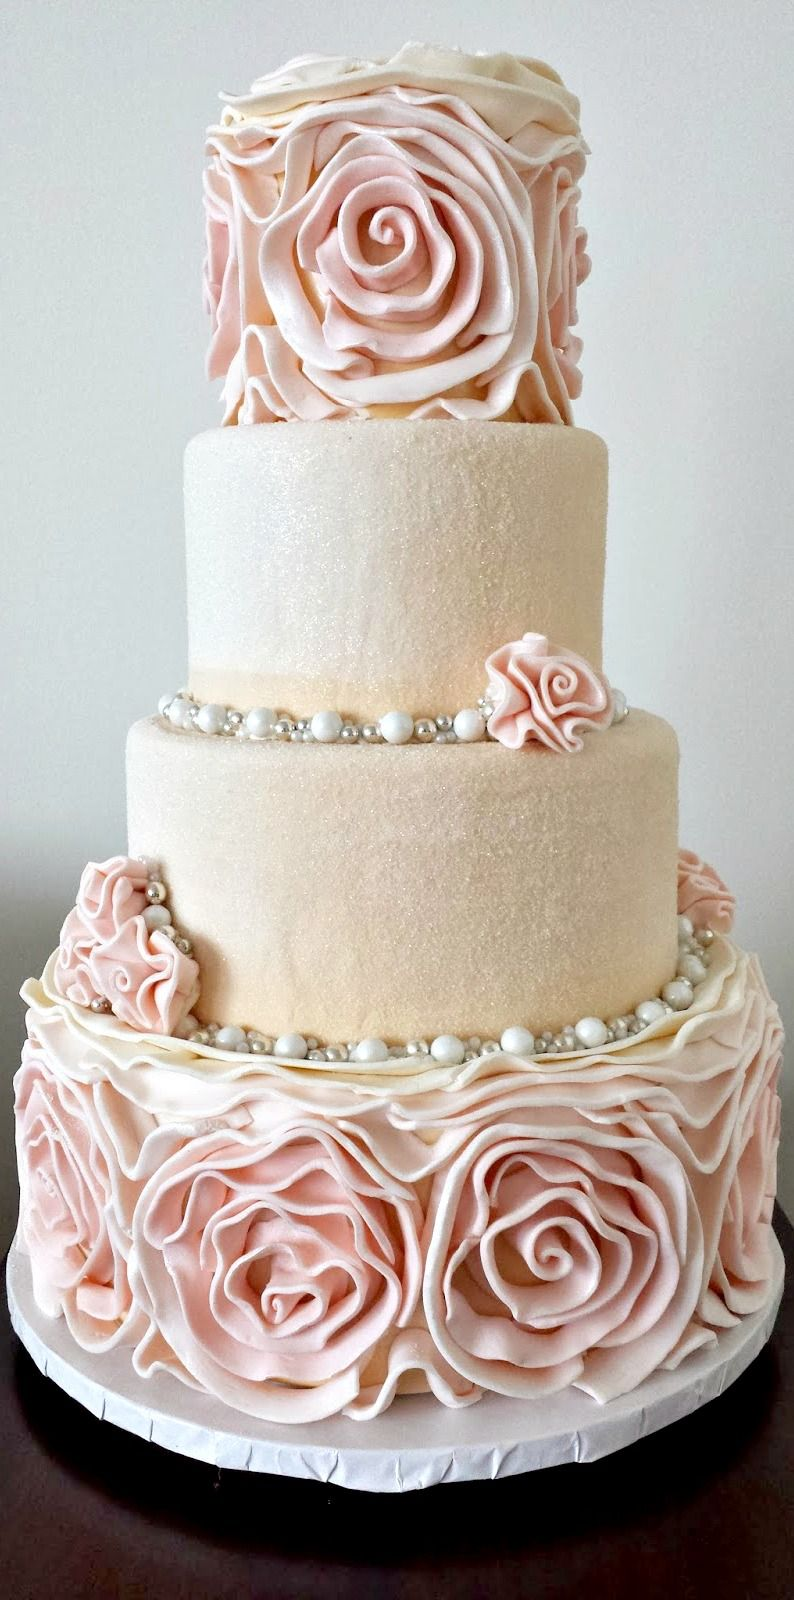 Wedding cake ruffle rose let them eat cake for Weisse kuchen bilder